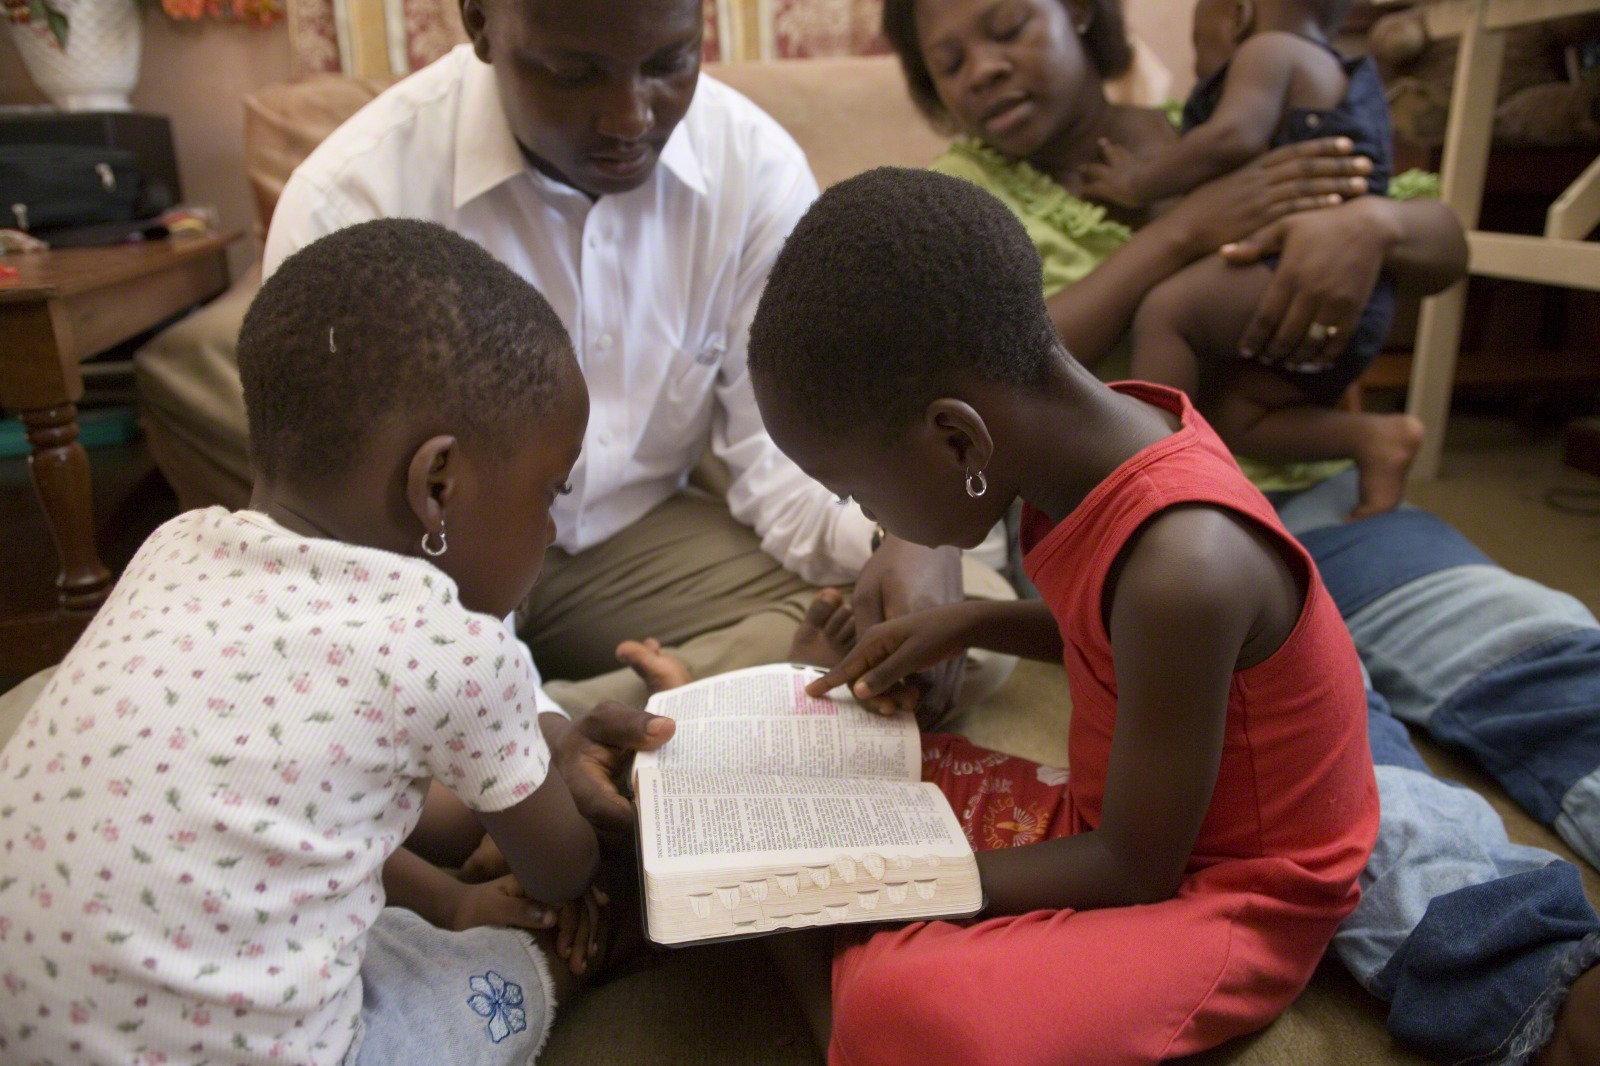 A father helps his two daughters read from the scriptures.